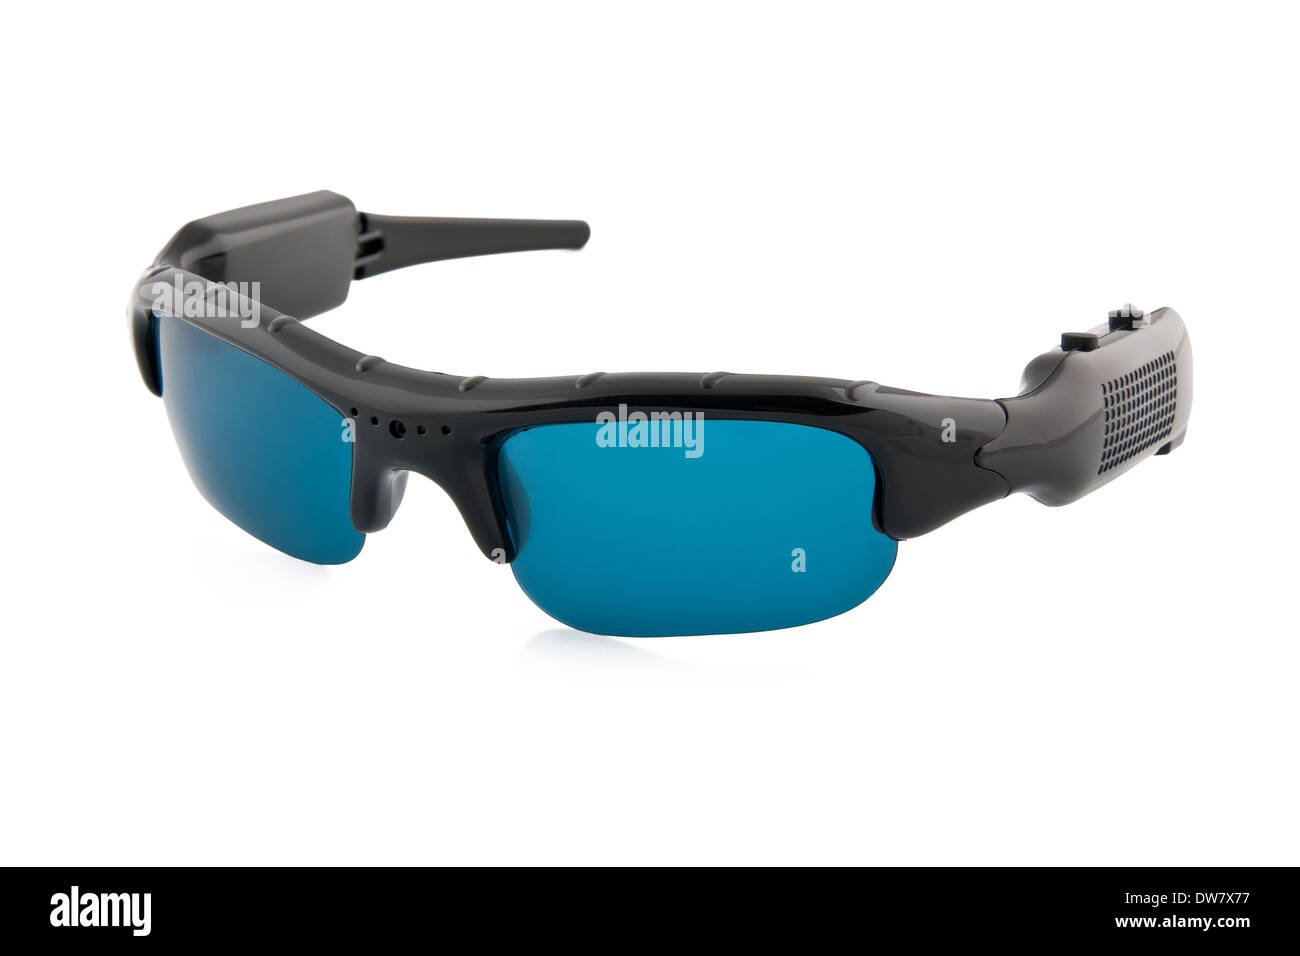 Sunglasses with camera - Stock Image